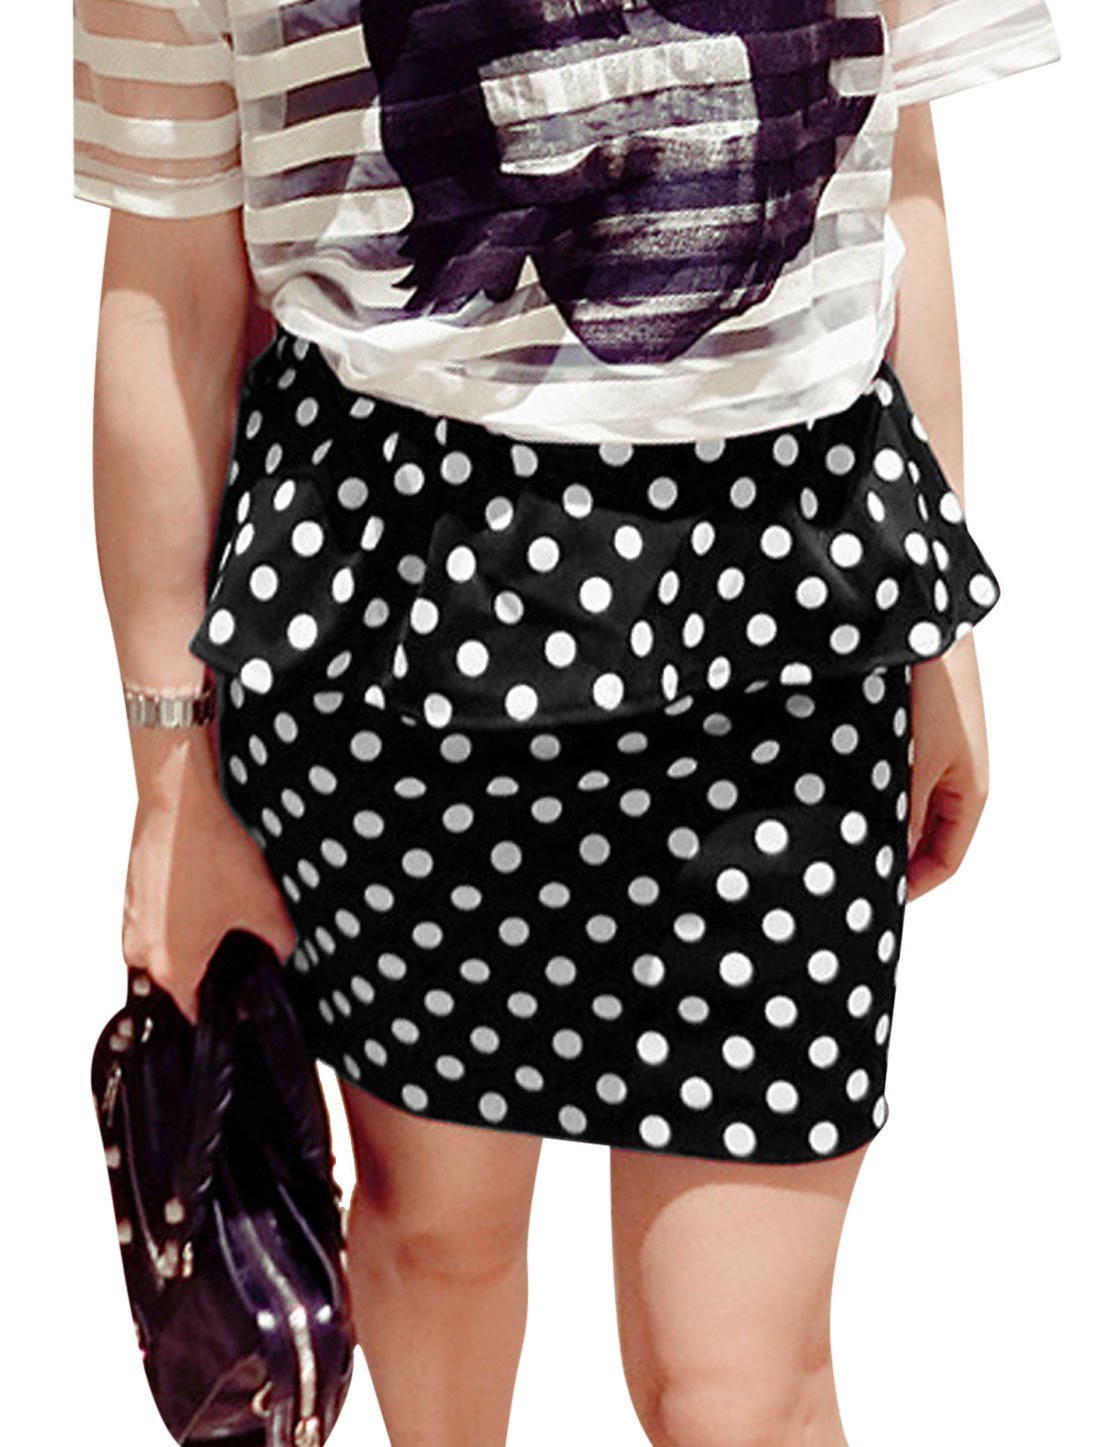 Lady Elastic Waist Dots Prints Flouncing Design Mini Skirt Black S